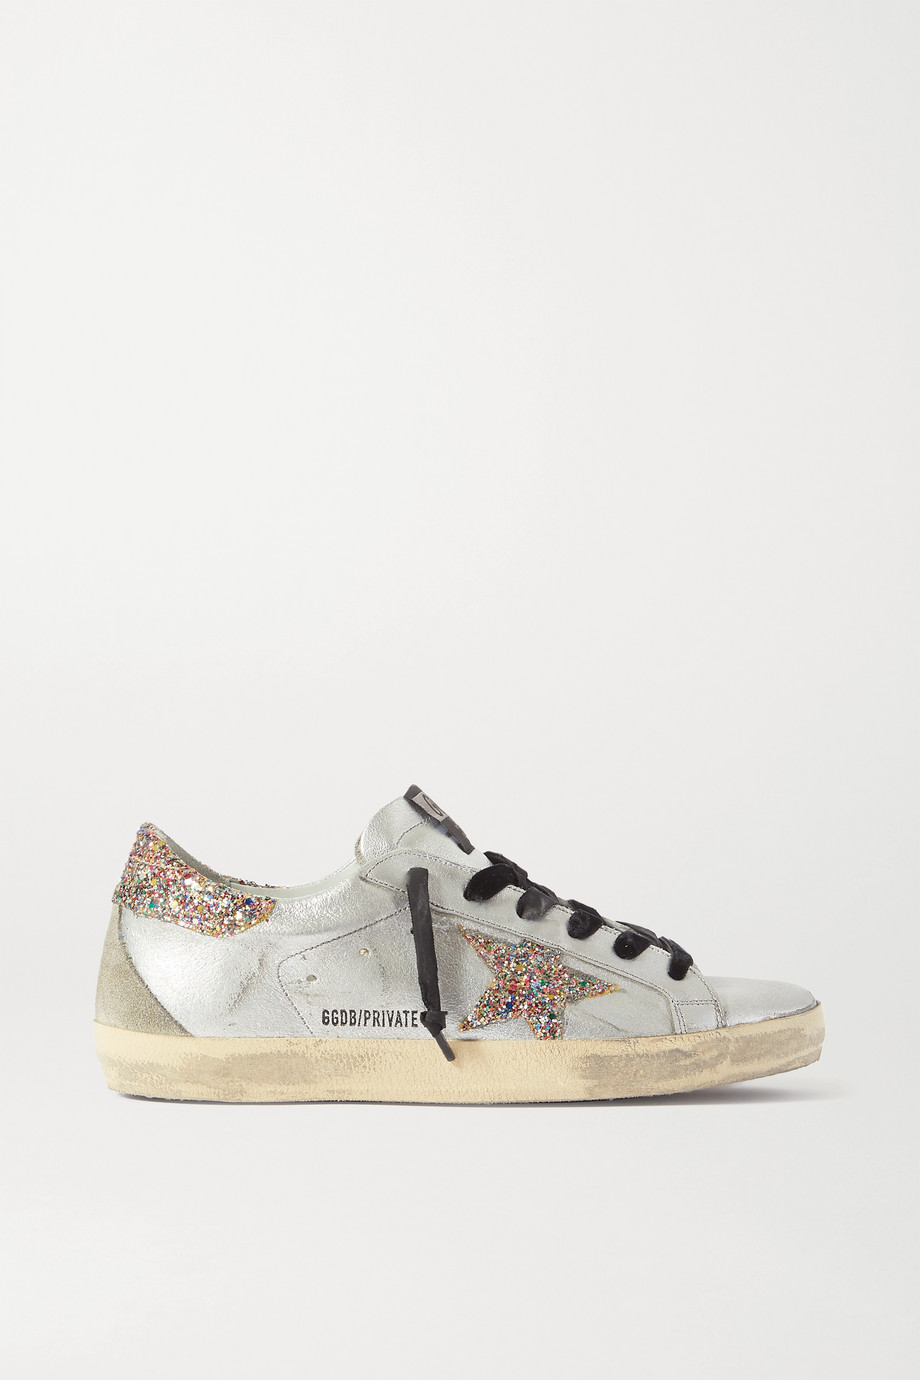 Golden Goose Superstar distressed glittered metallic leather sneakers